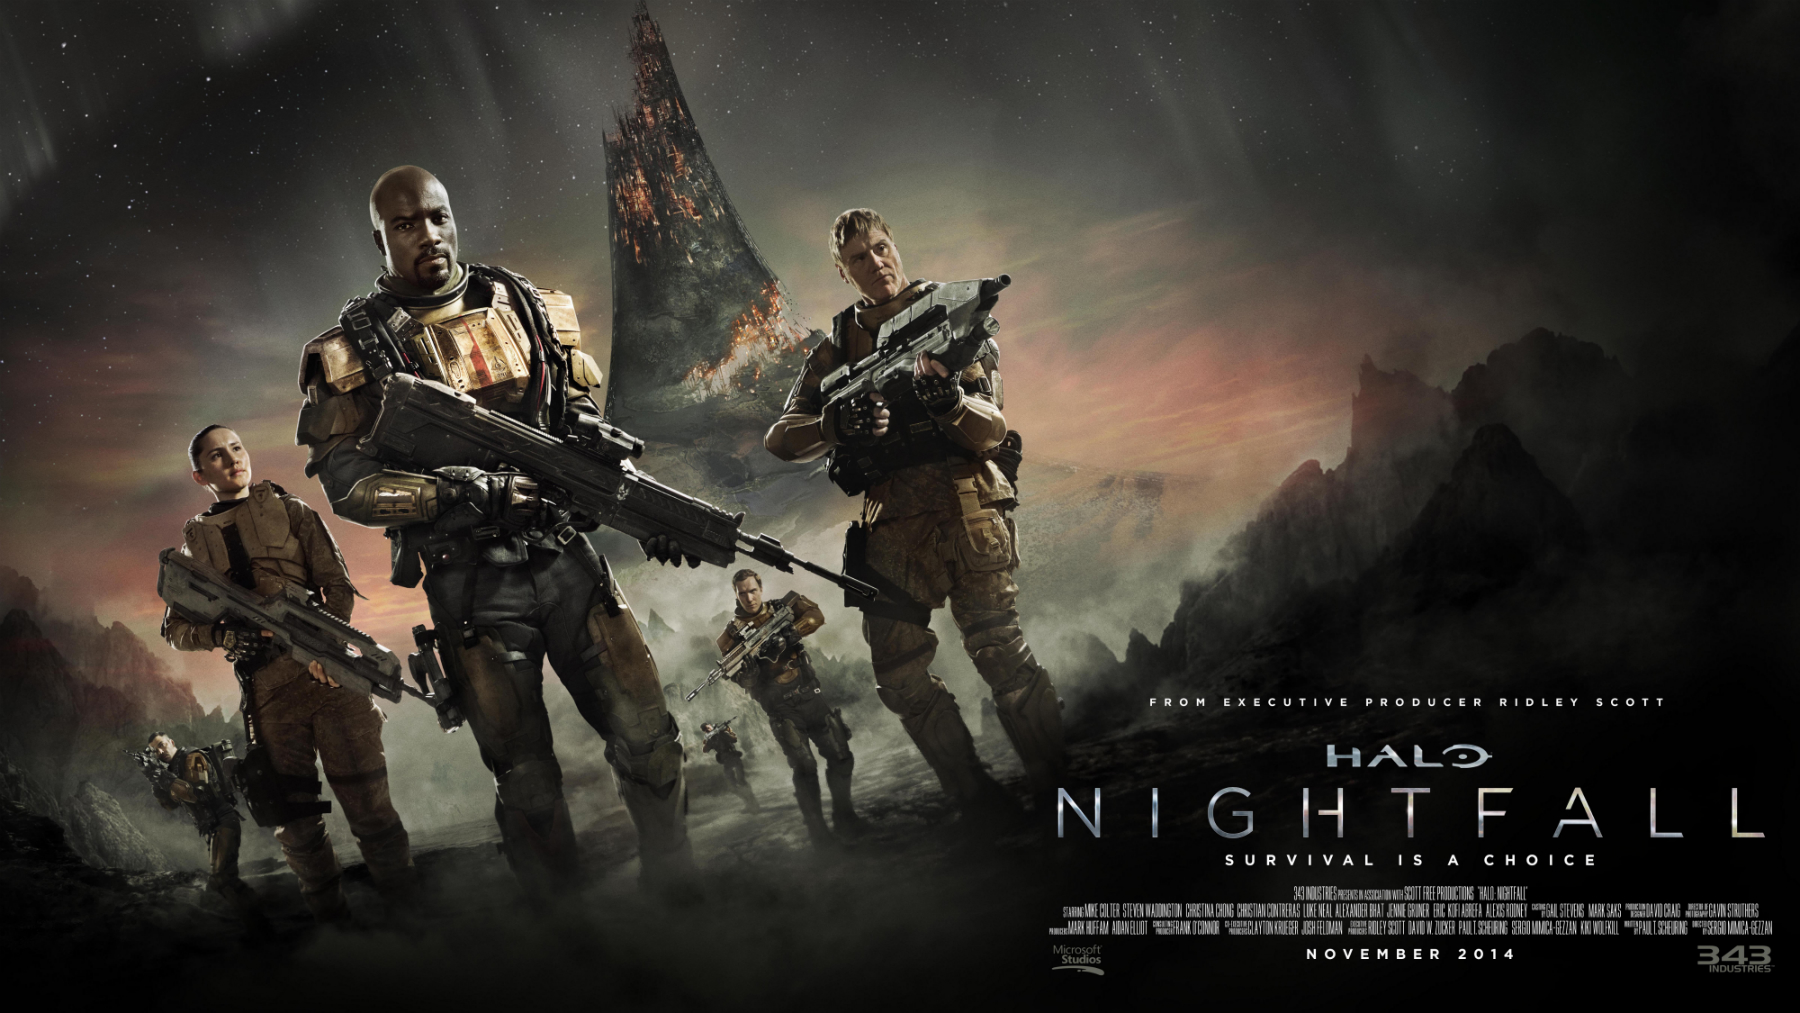 Watch the First Trailer for Ridley Scott's Halo: Nightfall Show